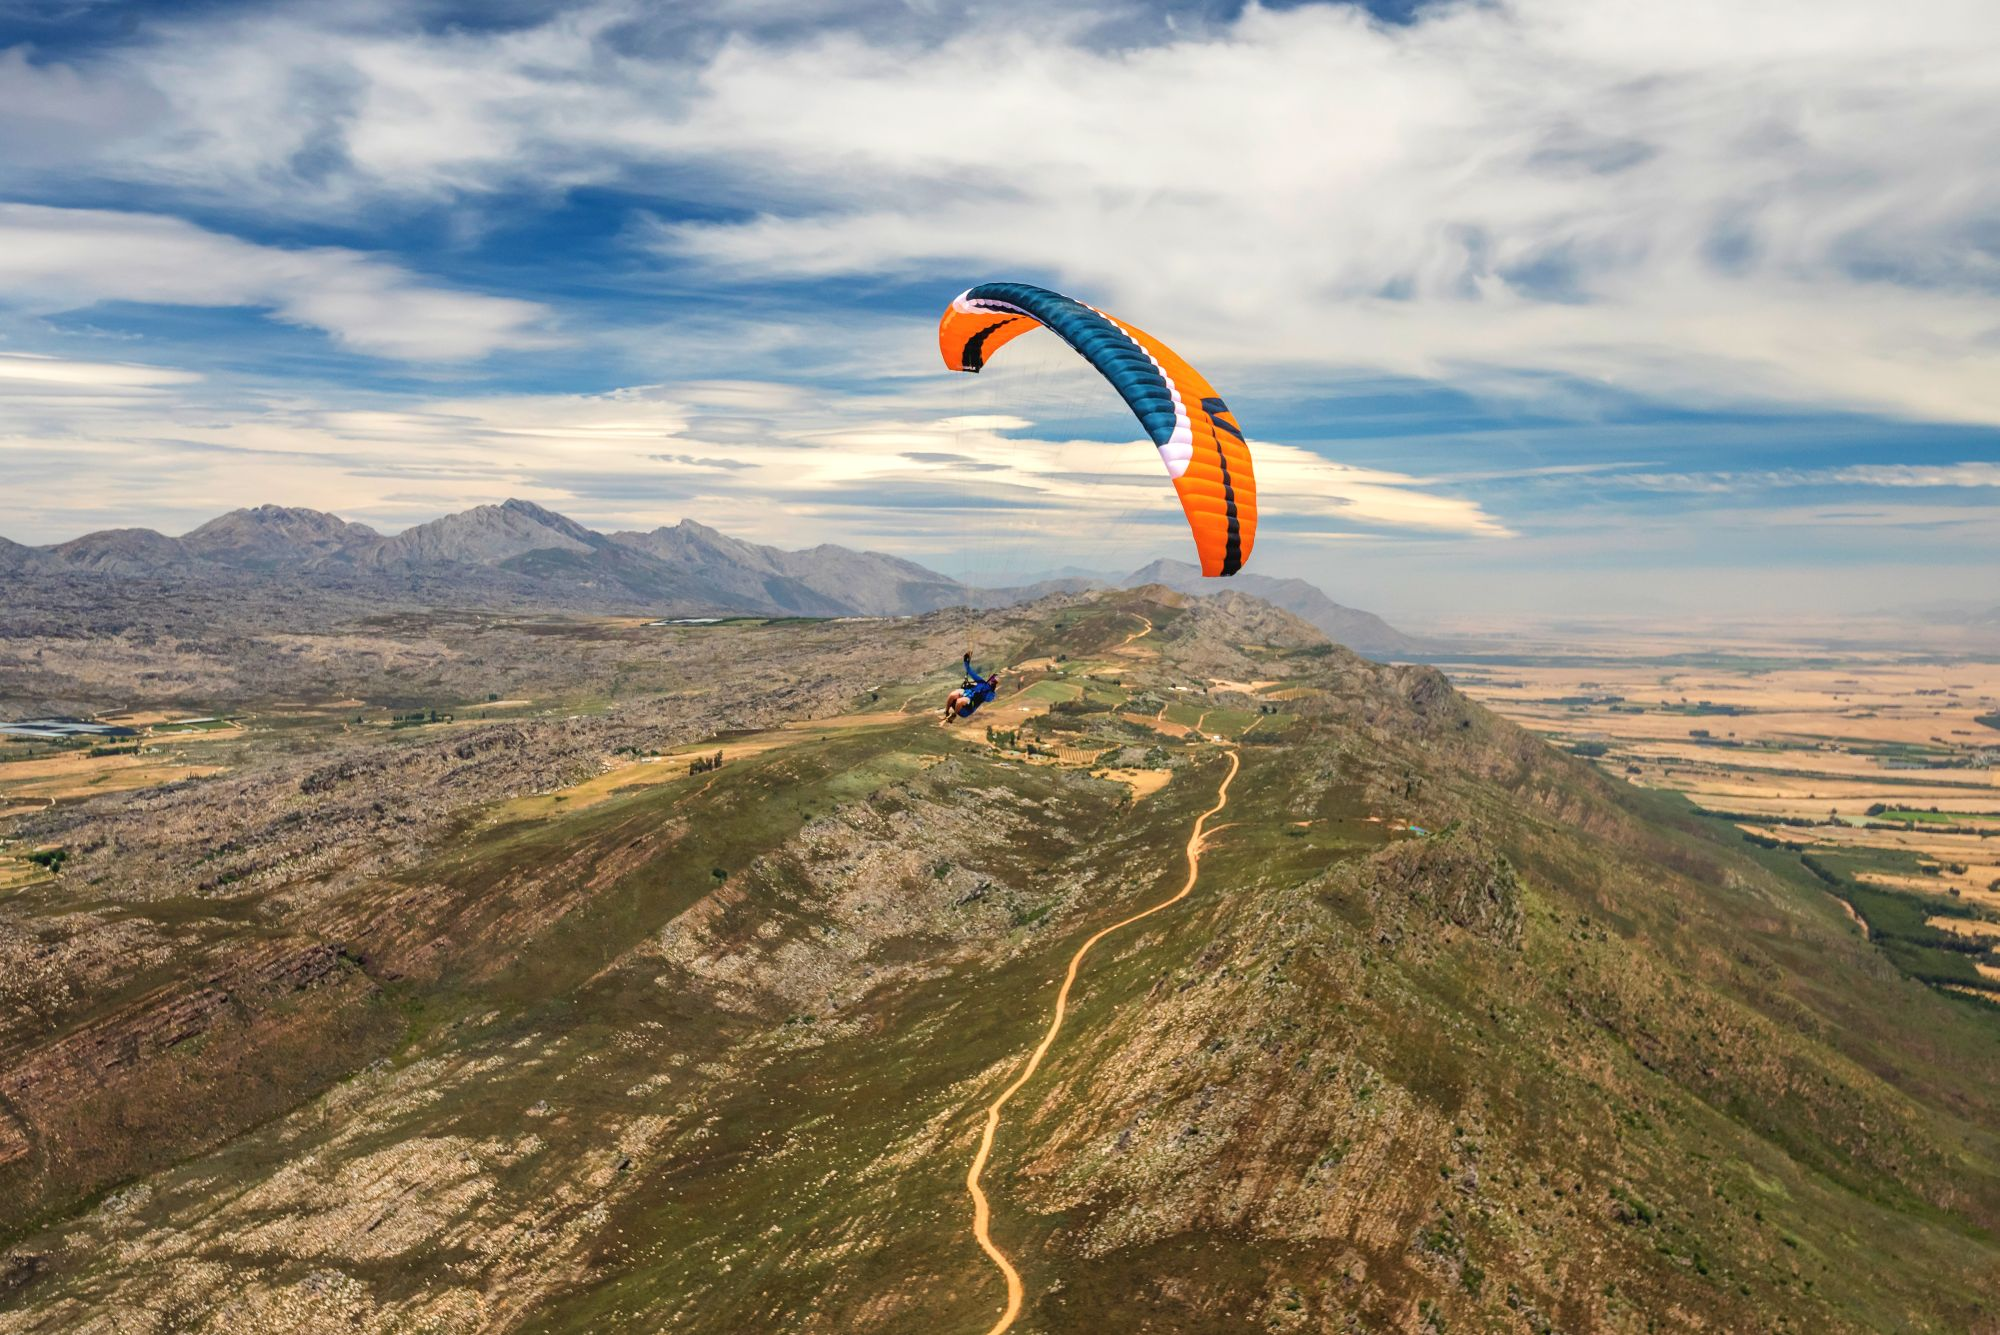 SkyWalk Mescal 5  available at FlySpain Paragliding shop